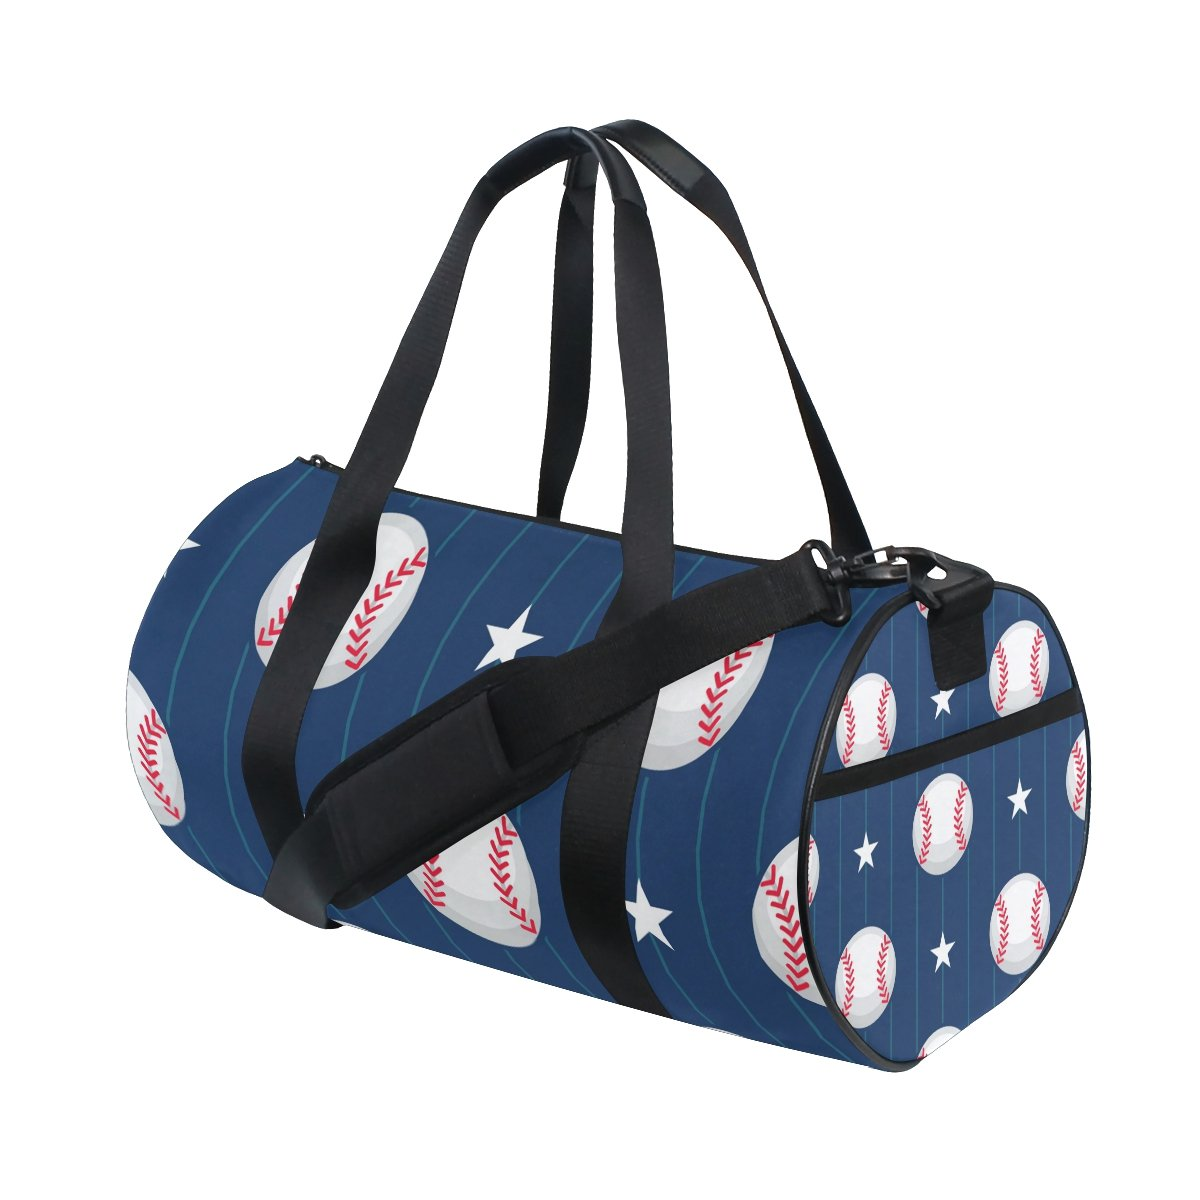 Baseball_Pattern3 Travel Duffle Bag Sports Luggage with Backpack Tote Gym Bag for Man and Women